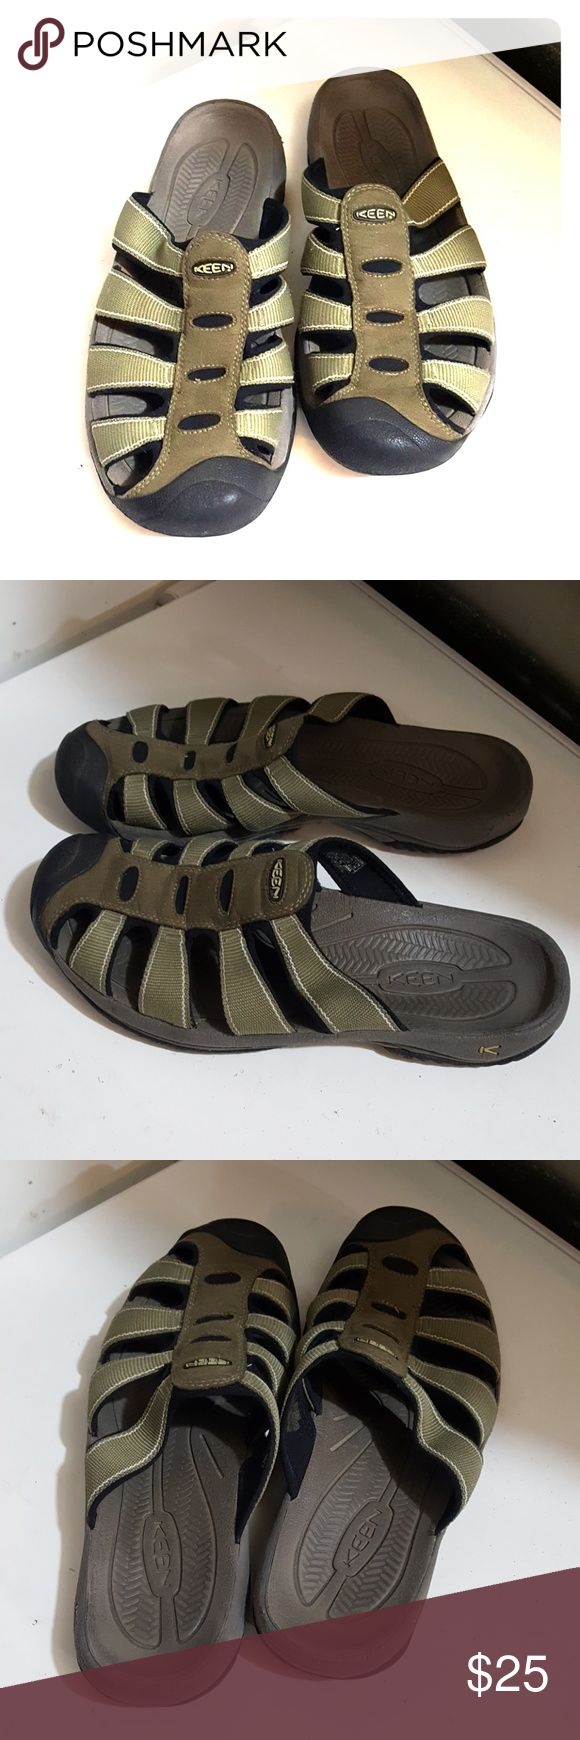 Keen men's slip-on sandals size 10.5 Synonyms for fond sandals size 10.5 they are in a very good condition. They're waterproof. I'm selling them at an excellent price so get them today! Keen Shoes Sandals & Flip-Flops